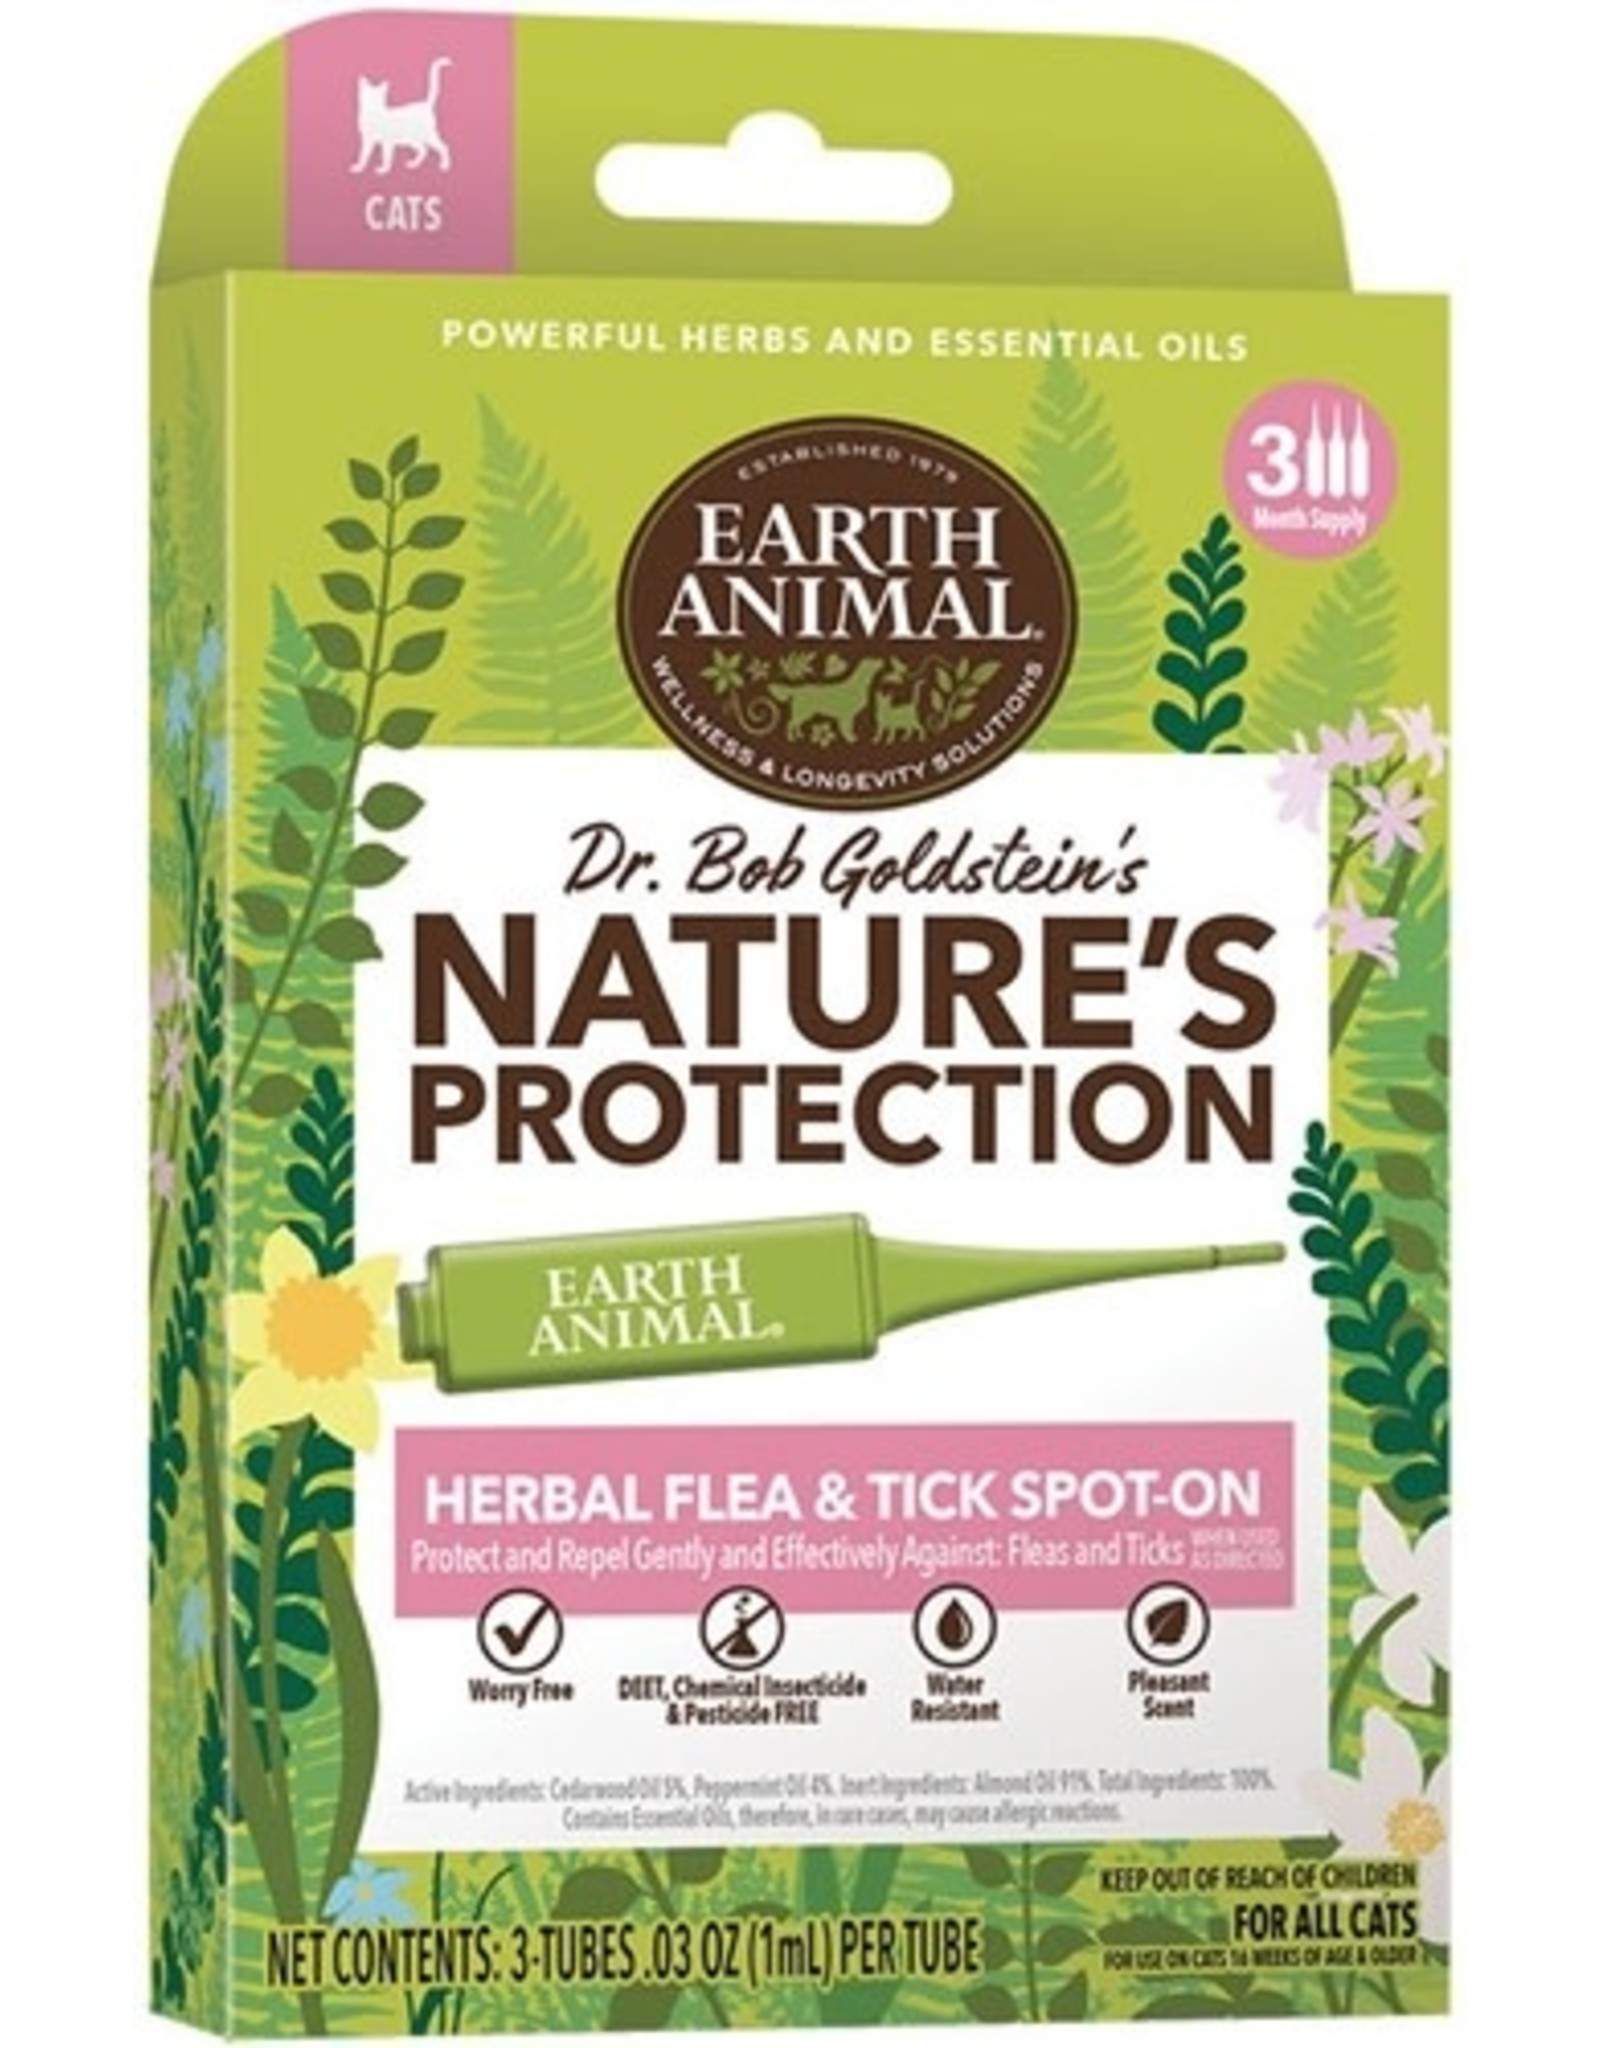 Earth Animal EARTH ANIMAL NATURE'S PROTECTION HERBAL FLEA & TICK SPOT-ON FOR CATS 3 DOSES